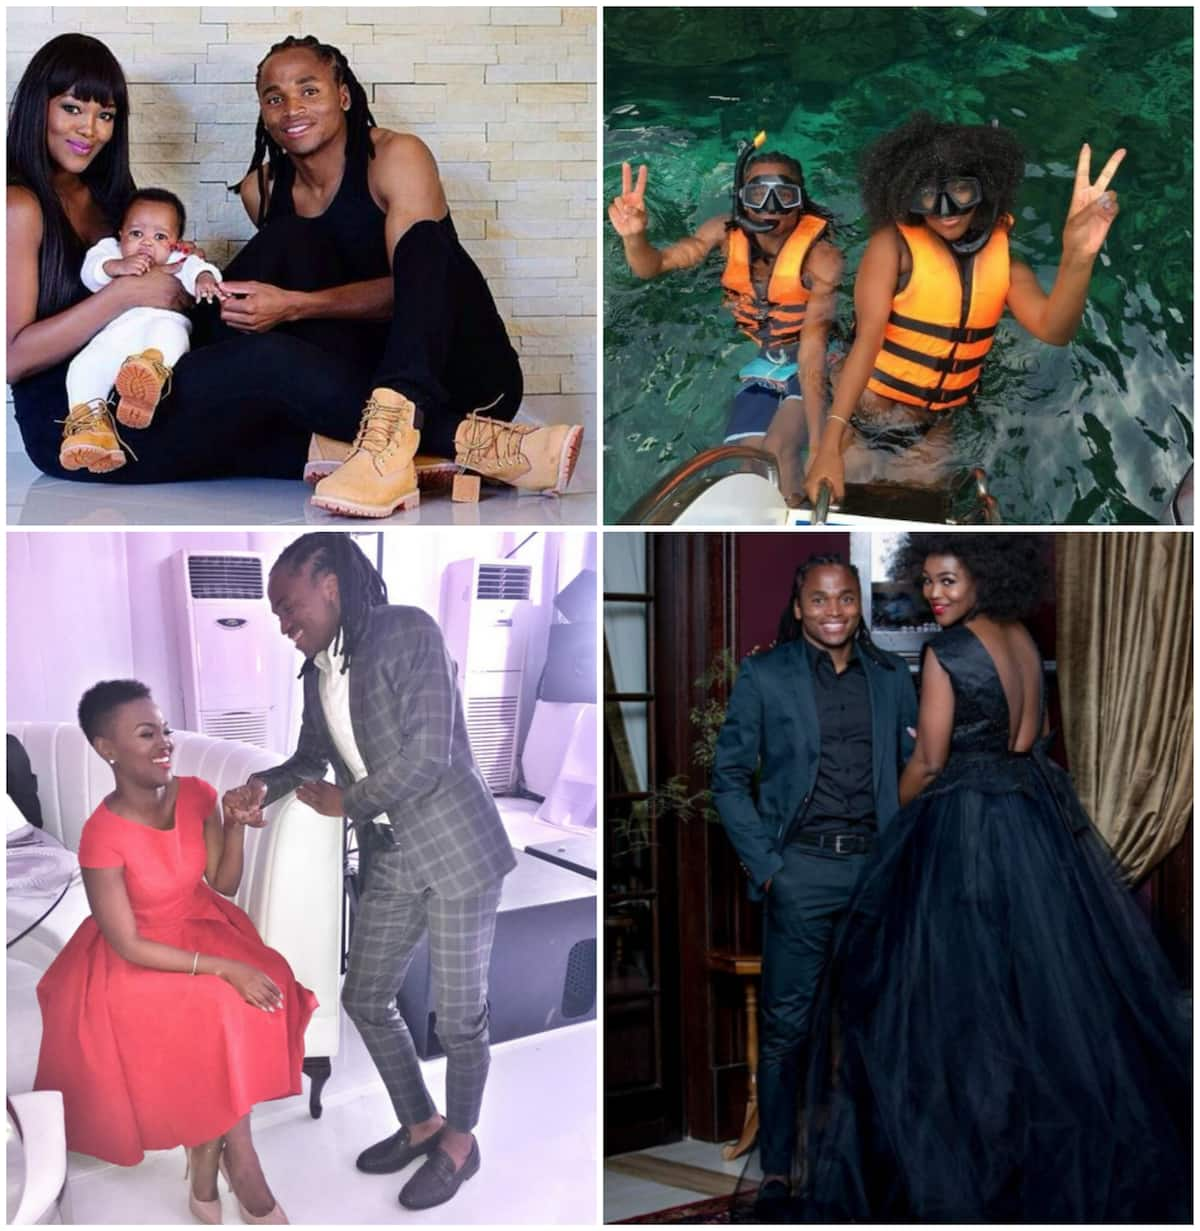 who is dating who in mzansi celebrities